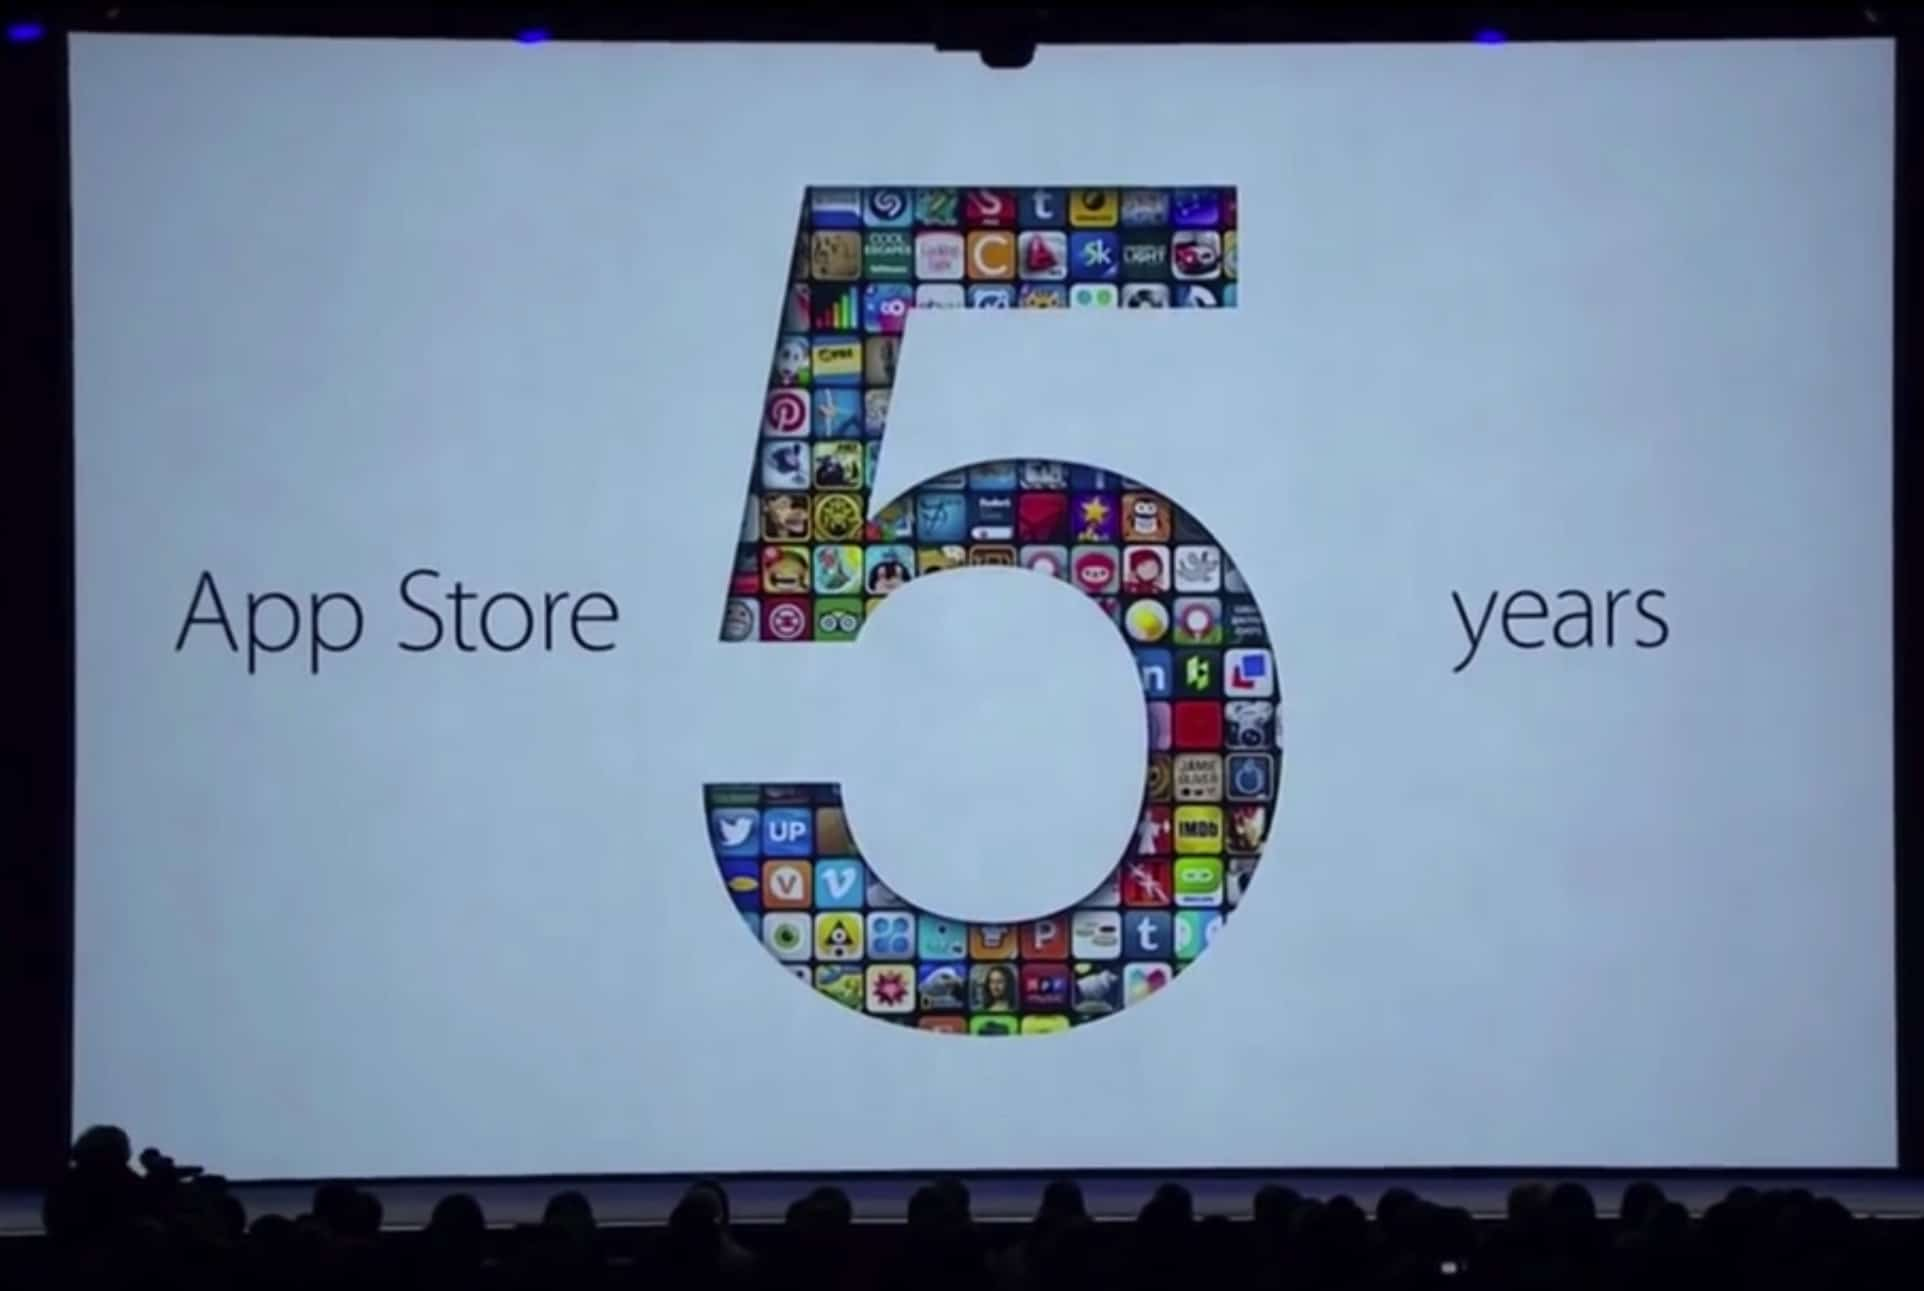 In its first five years, the App Store becomes an unstoppable money machine, paying out $10 billion to app developers.